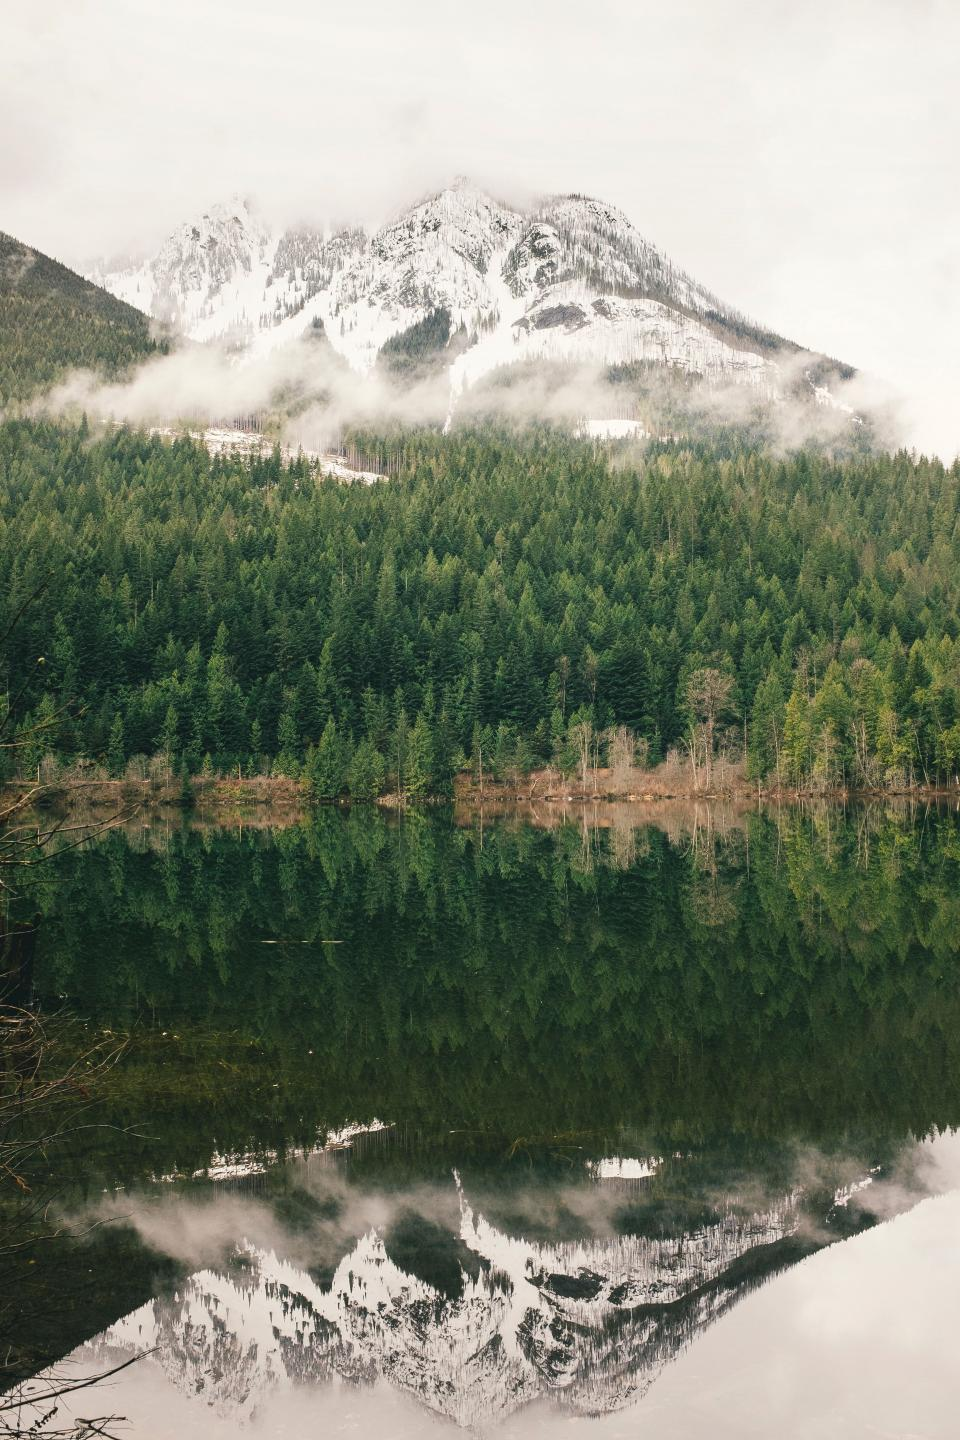 green trees plant nature forest lake water reflection mountain fog snow winter outdoor travel view nature